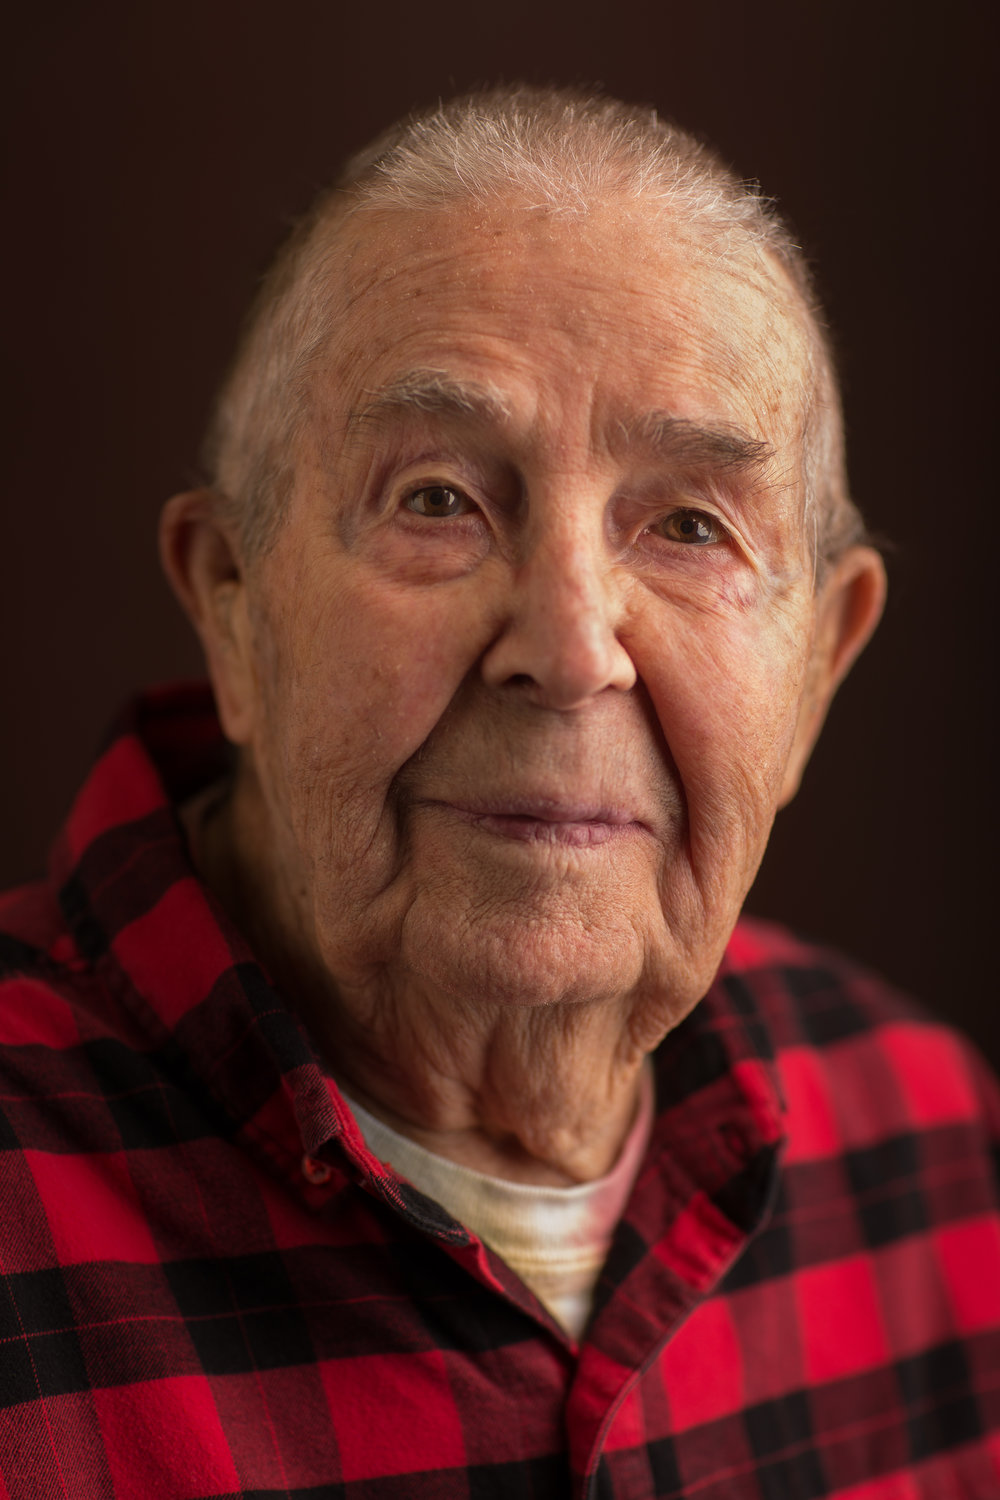 """Ed Hendrickson, 98, of Brewer, Maine, still plans to do some downhill skiing once the snow starts to fly; in 2003 Hendrickson was the recipient of Sugarloaf's Paul Schipper's Iron Man Award. While he's been an avid skier most of his life and the dean of students at Northern Maine Vocational Technical Institute for 17 years, he was also a naval dive-bomber in WWII. Ed flew (and on a couple occasions) had to crash-land planes he was flying. In combat Hendrickson flew SB2C Helldivers. Over the span of just a few days, he shot down one enemy plane only to be hit by enemy fire a couple days later, losing his landing gear on one side, and crash-landing on an aircraft carrier--just the 14th aircraft carrier ever built, according to Hendrickson. """"After they took the gun camera off the plane, they just pushed it overboard,"""" he said. """"That's just how they did things."""" On a previous occasion he wasn't able to land on the carrier and ended up careening off into a lake, where he narrowly escaped being dragged 130 feet to the bottom with his plane. That particular plane, a Douglass SBD Dauntless, was brought back to the surface in the 1990s and now can be seen on display at the National Museum of Naval Aviation in Pensacola, Florida."""